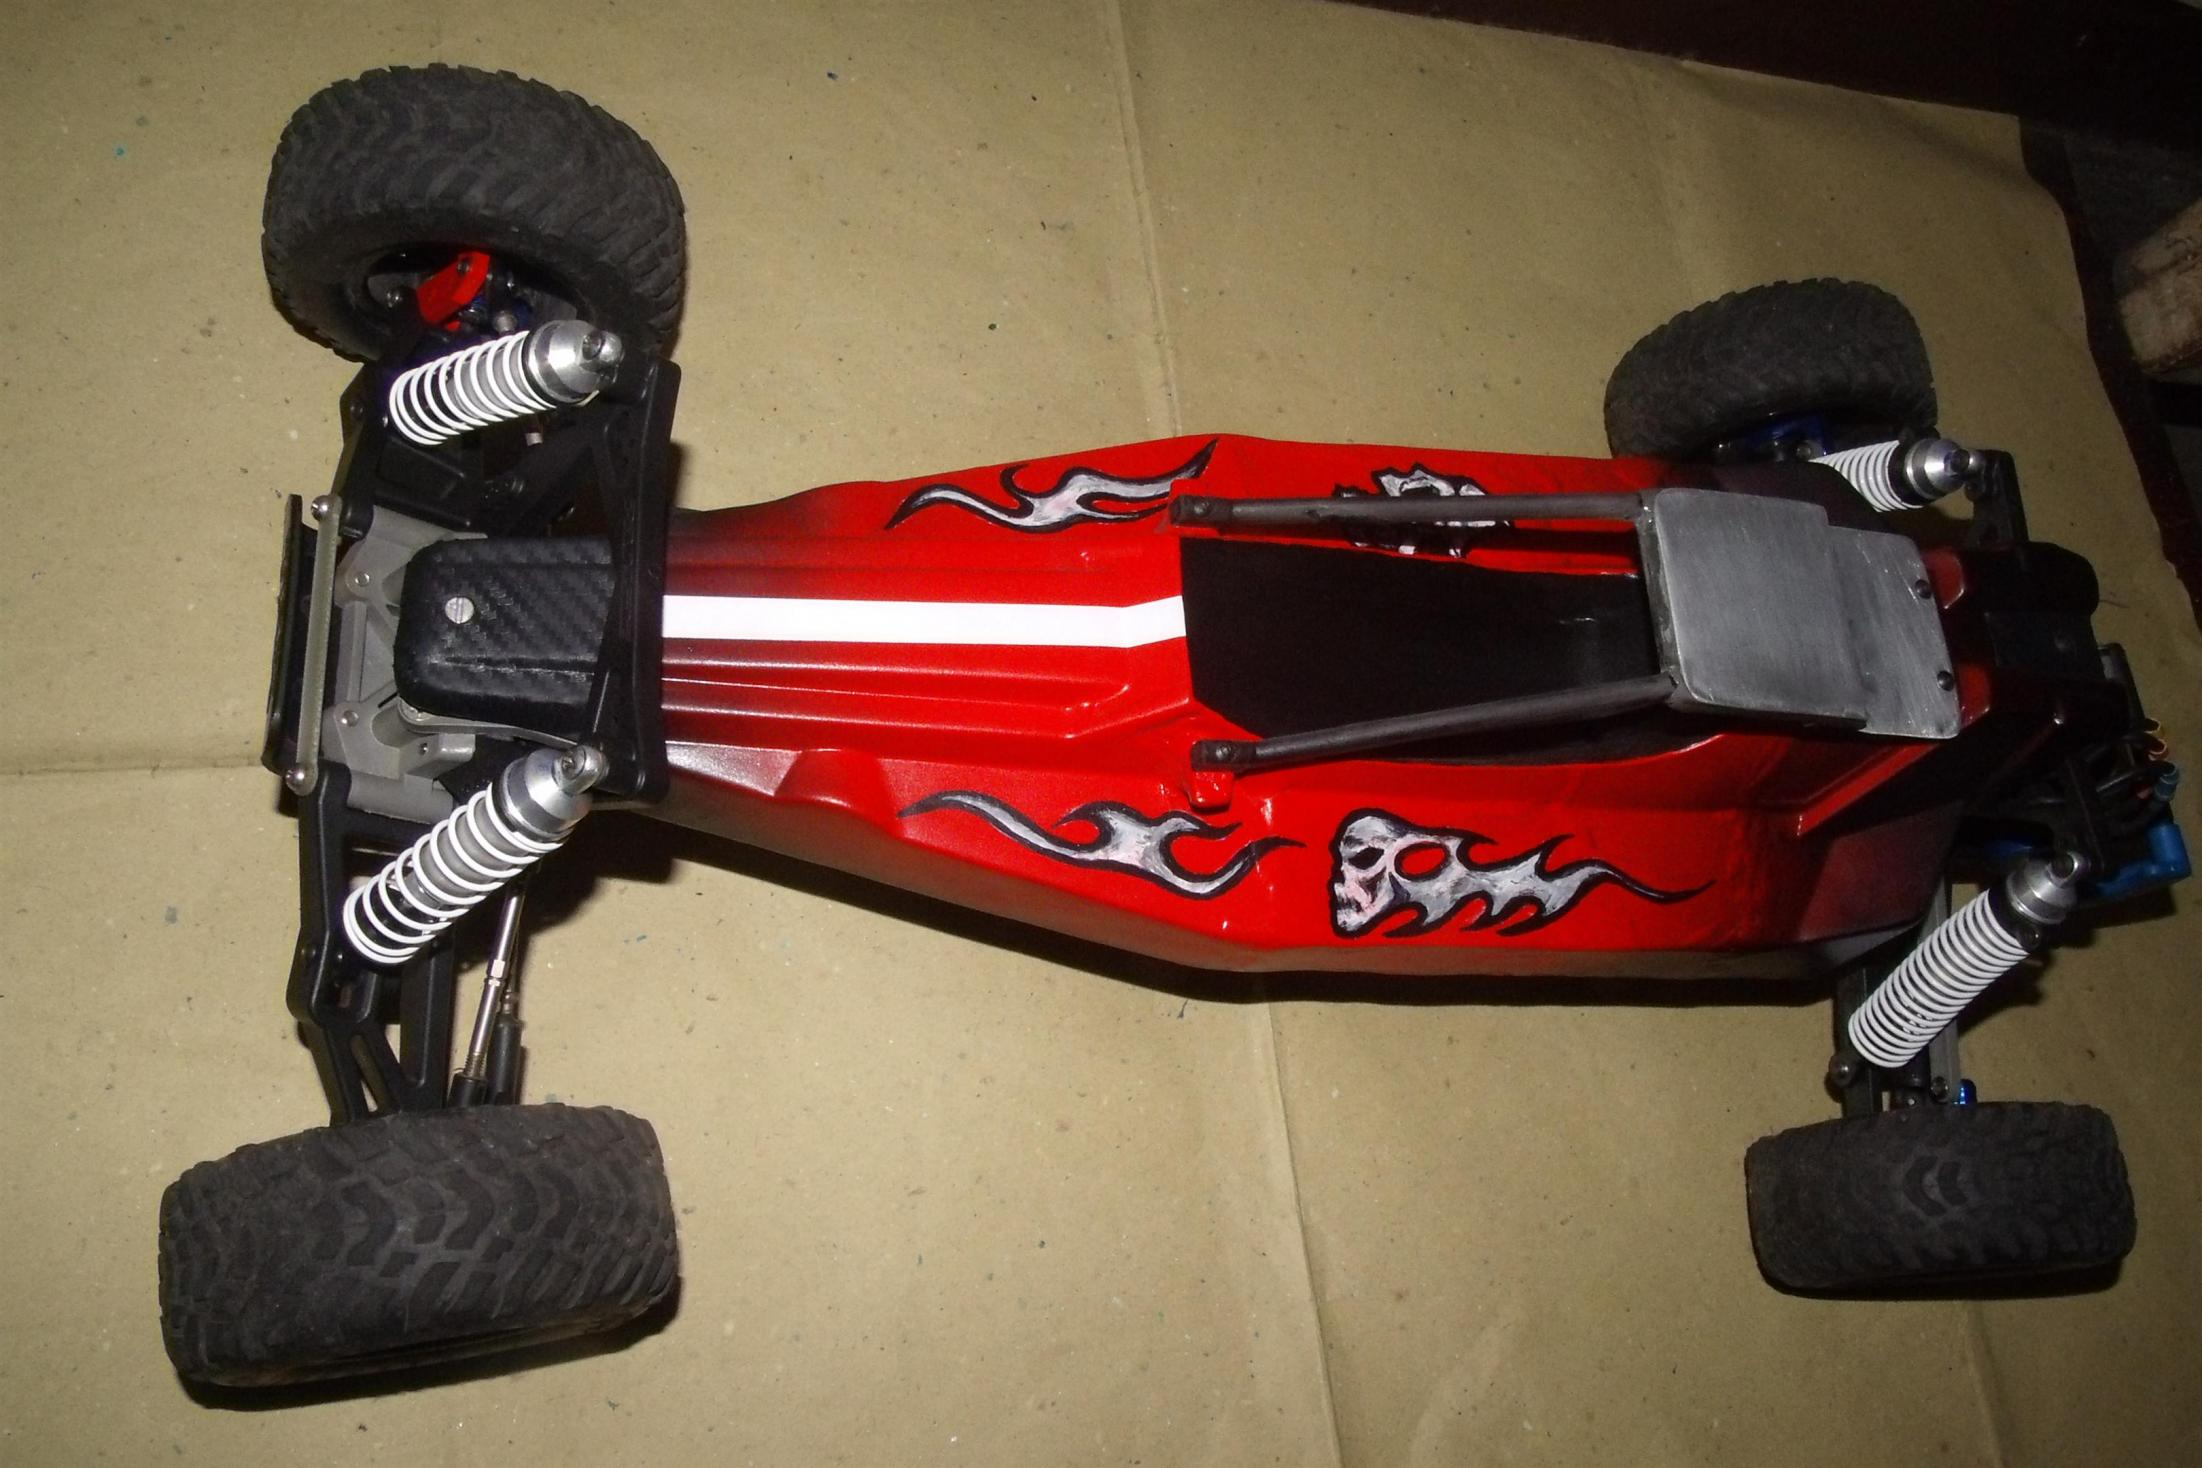 Traxxas Rustler 1 8 Buggy Build small gedc2527